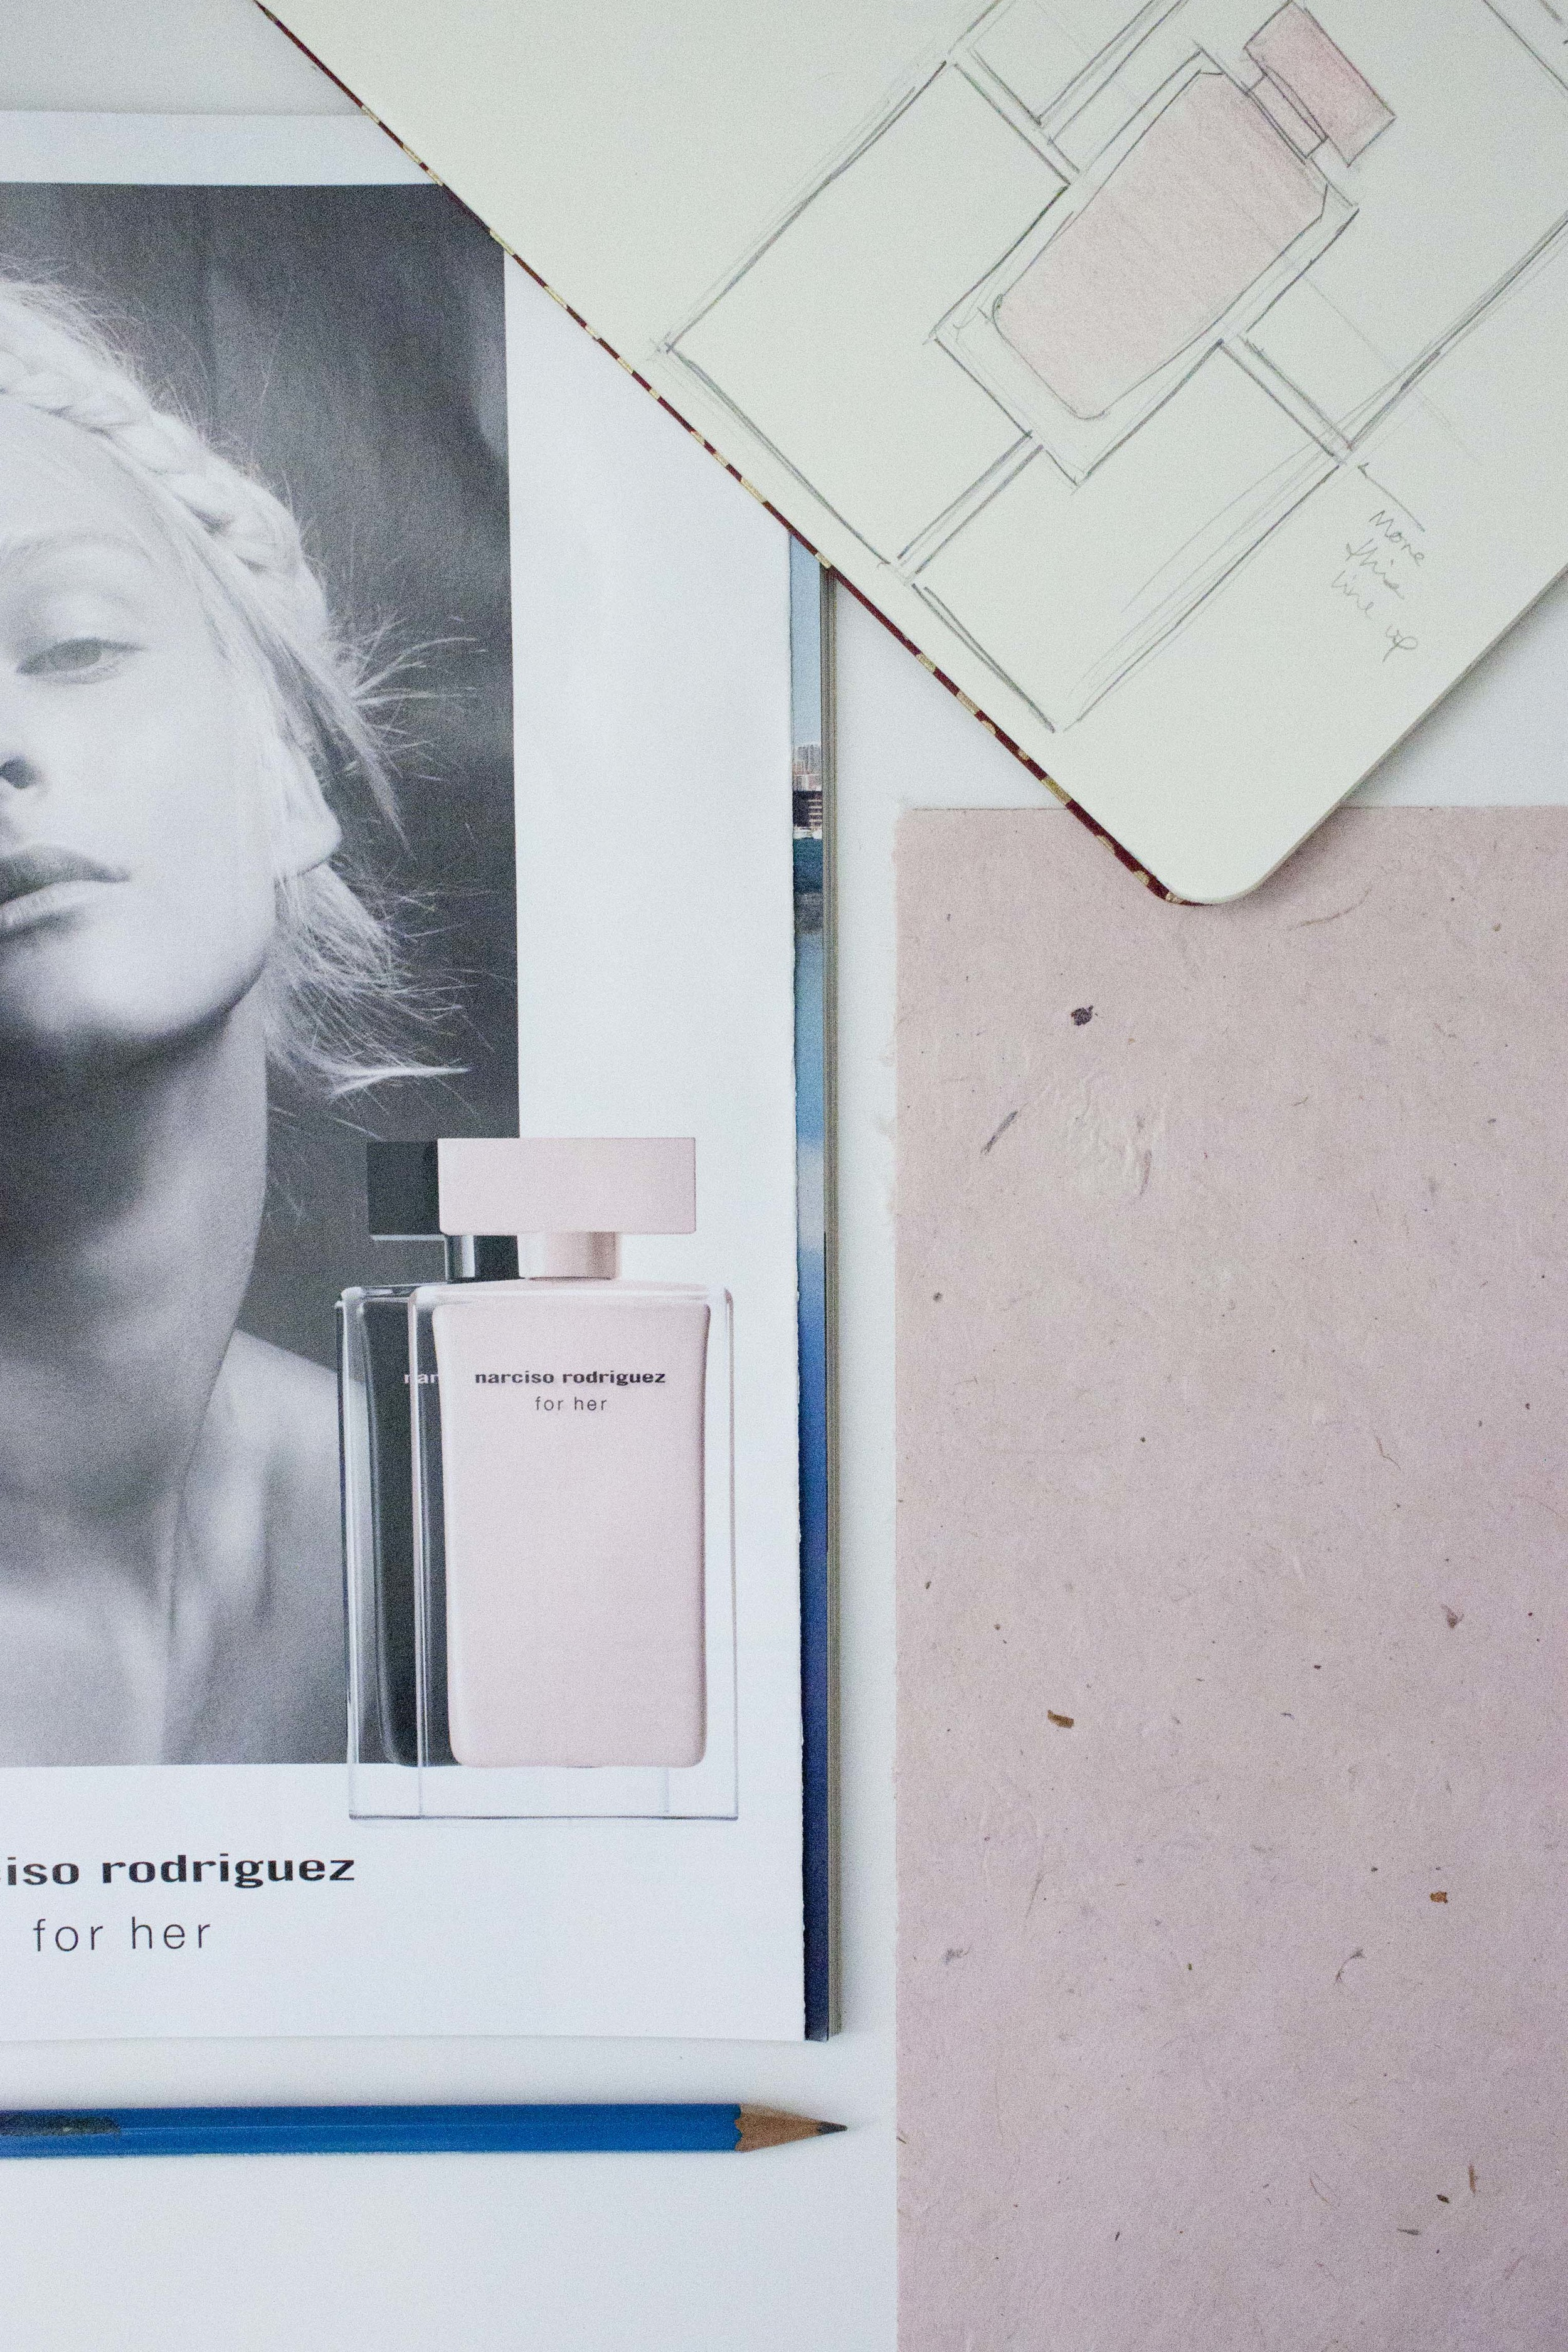 Narciso Rodriguez For Her illustrated by Victoria-Riza